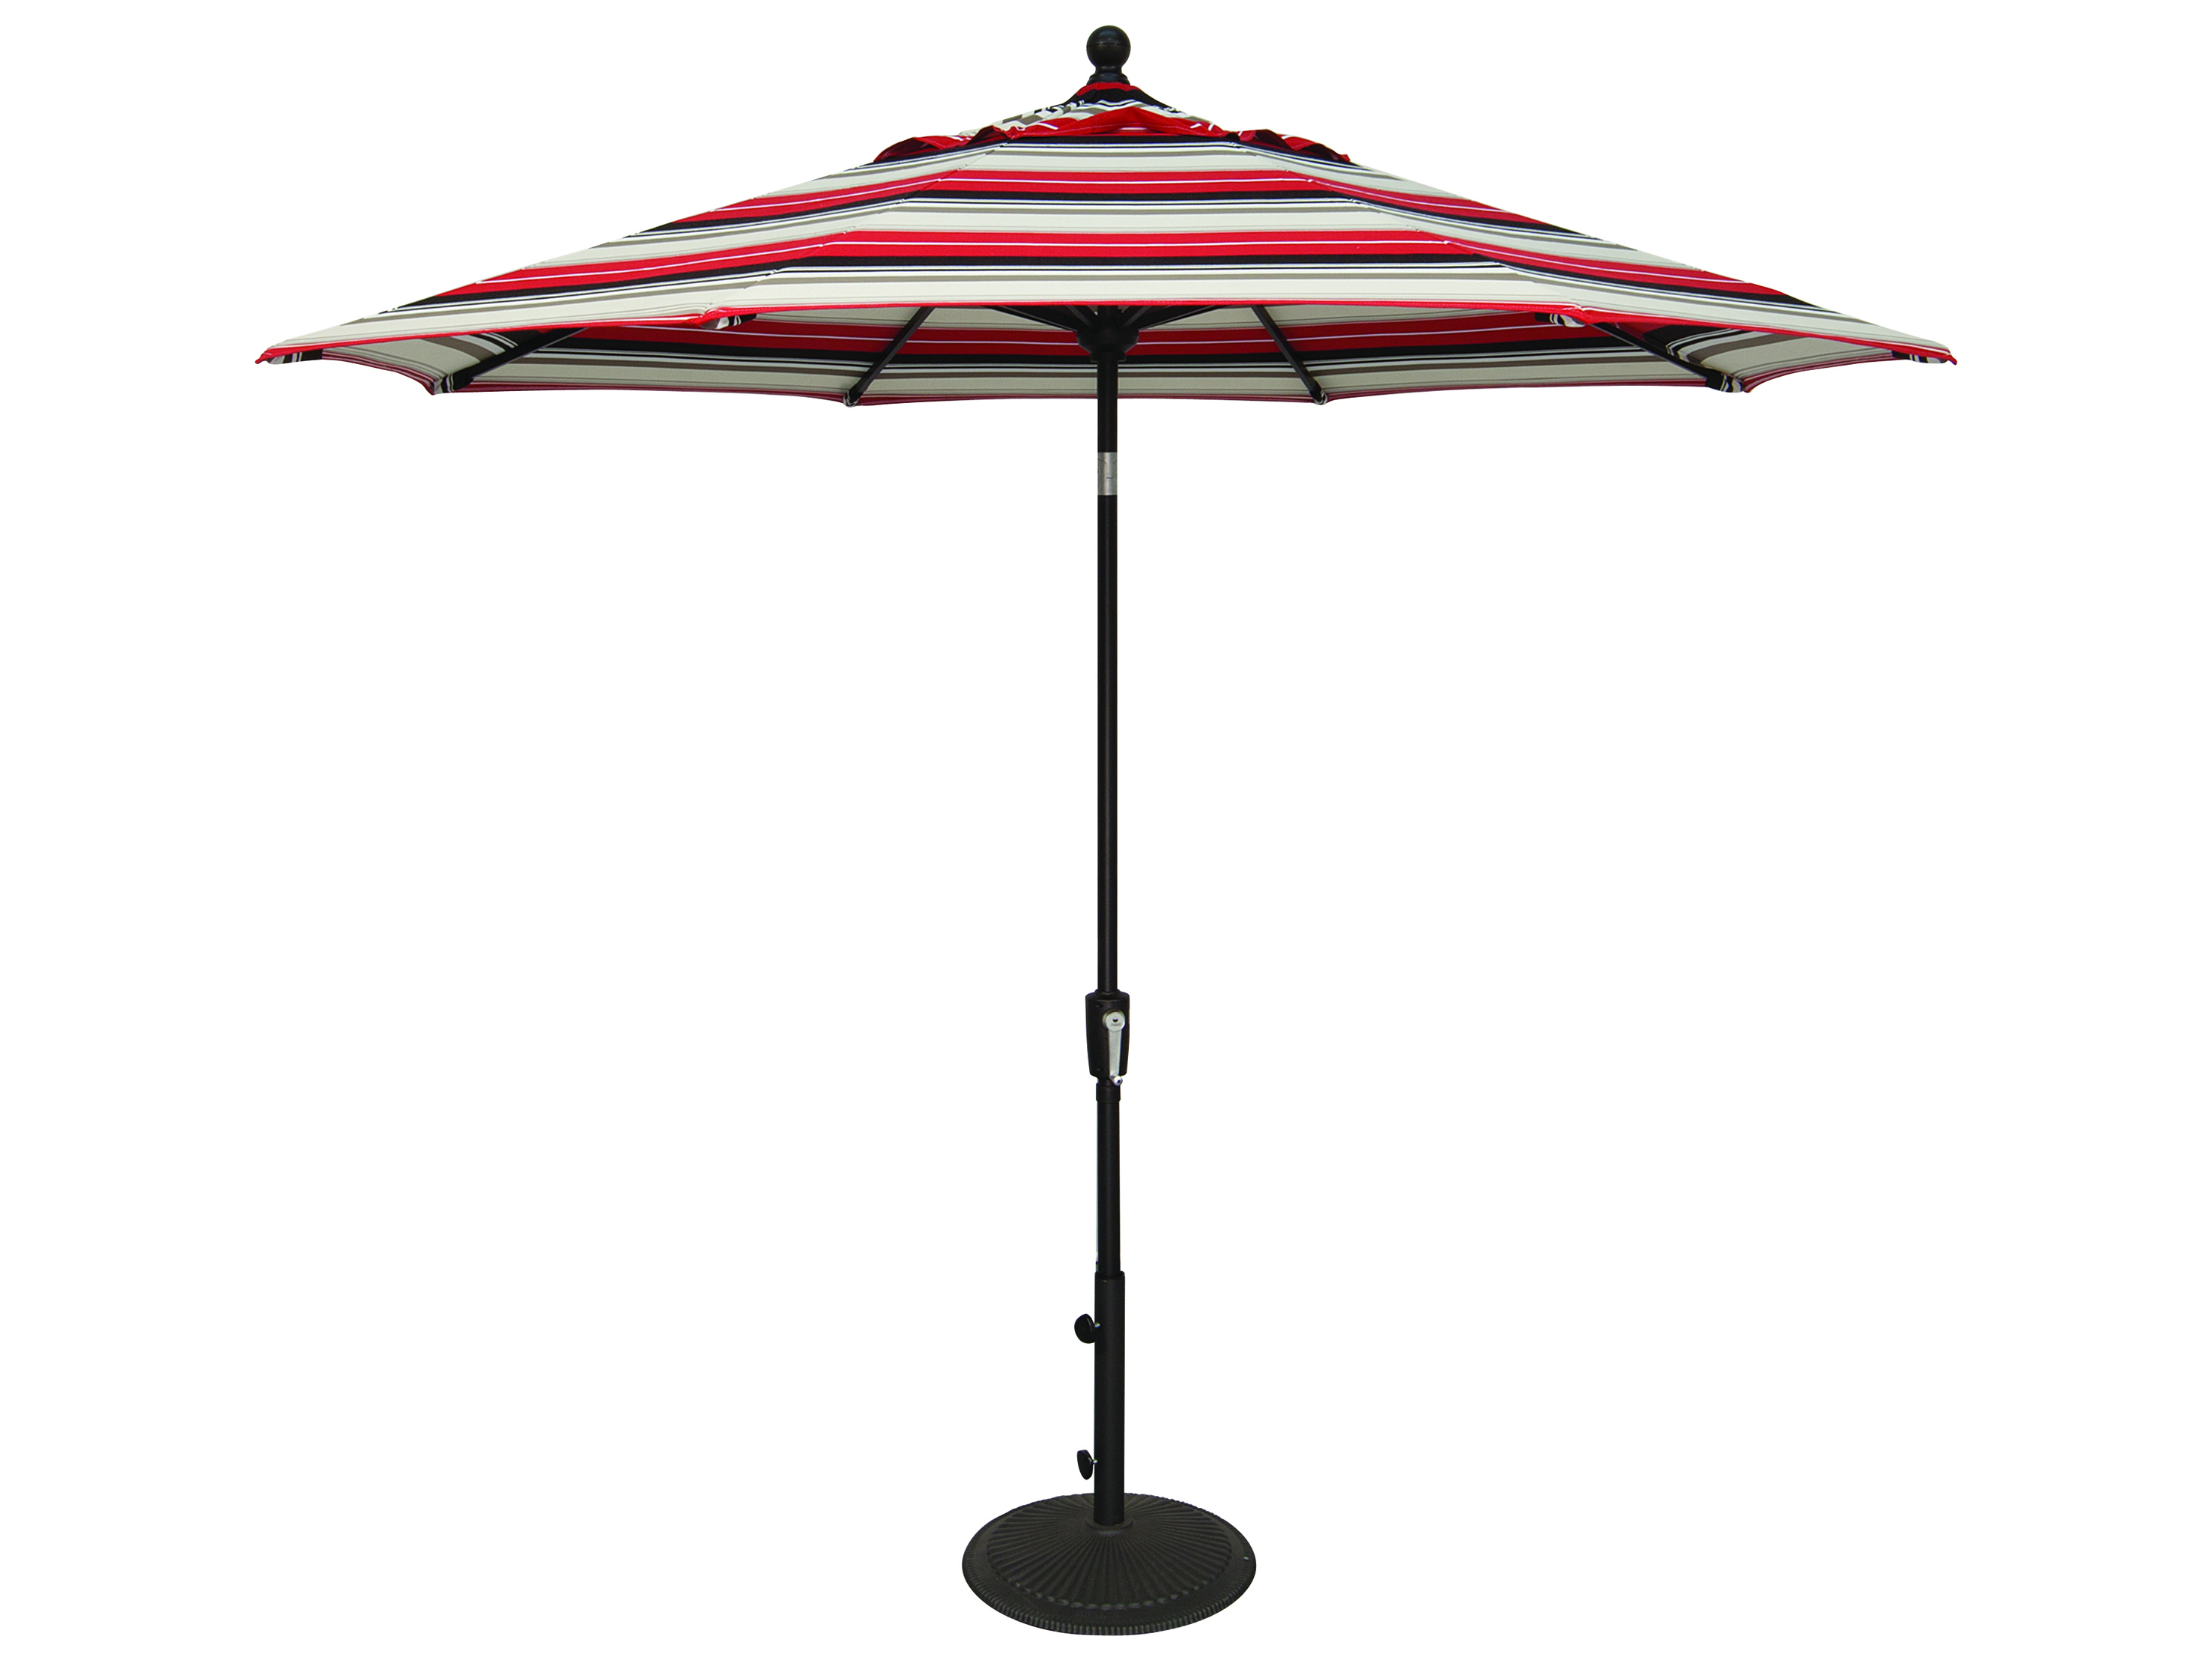 New Haven Market Umbrellas Inside Recent Treasure Garden Market Aluminum 9' Foot Wide Crank Lift Push Button Tilt Umbrella (View 18 of 20)